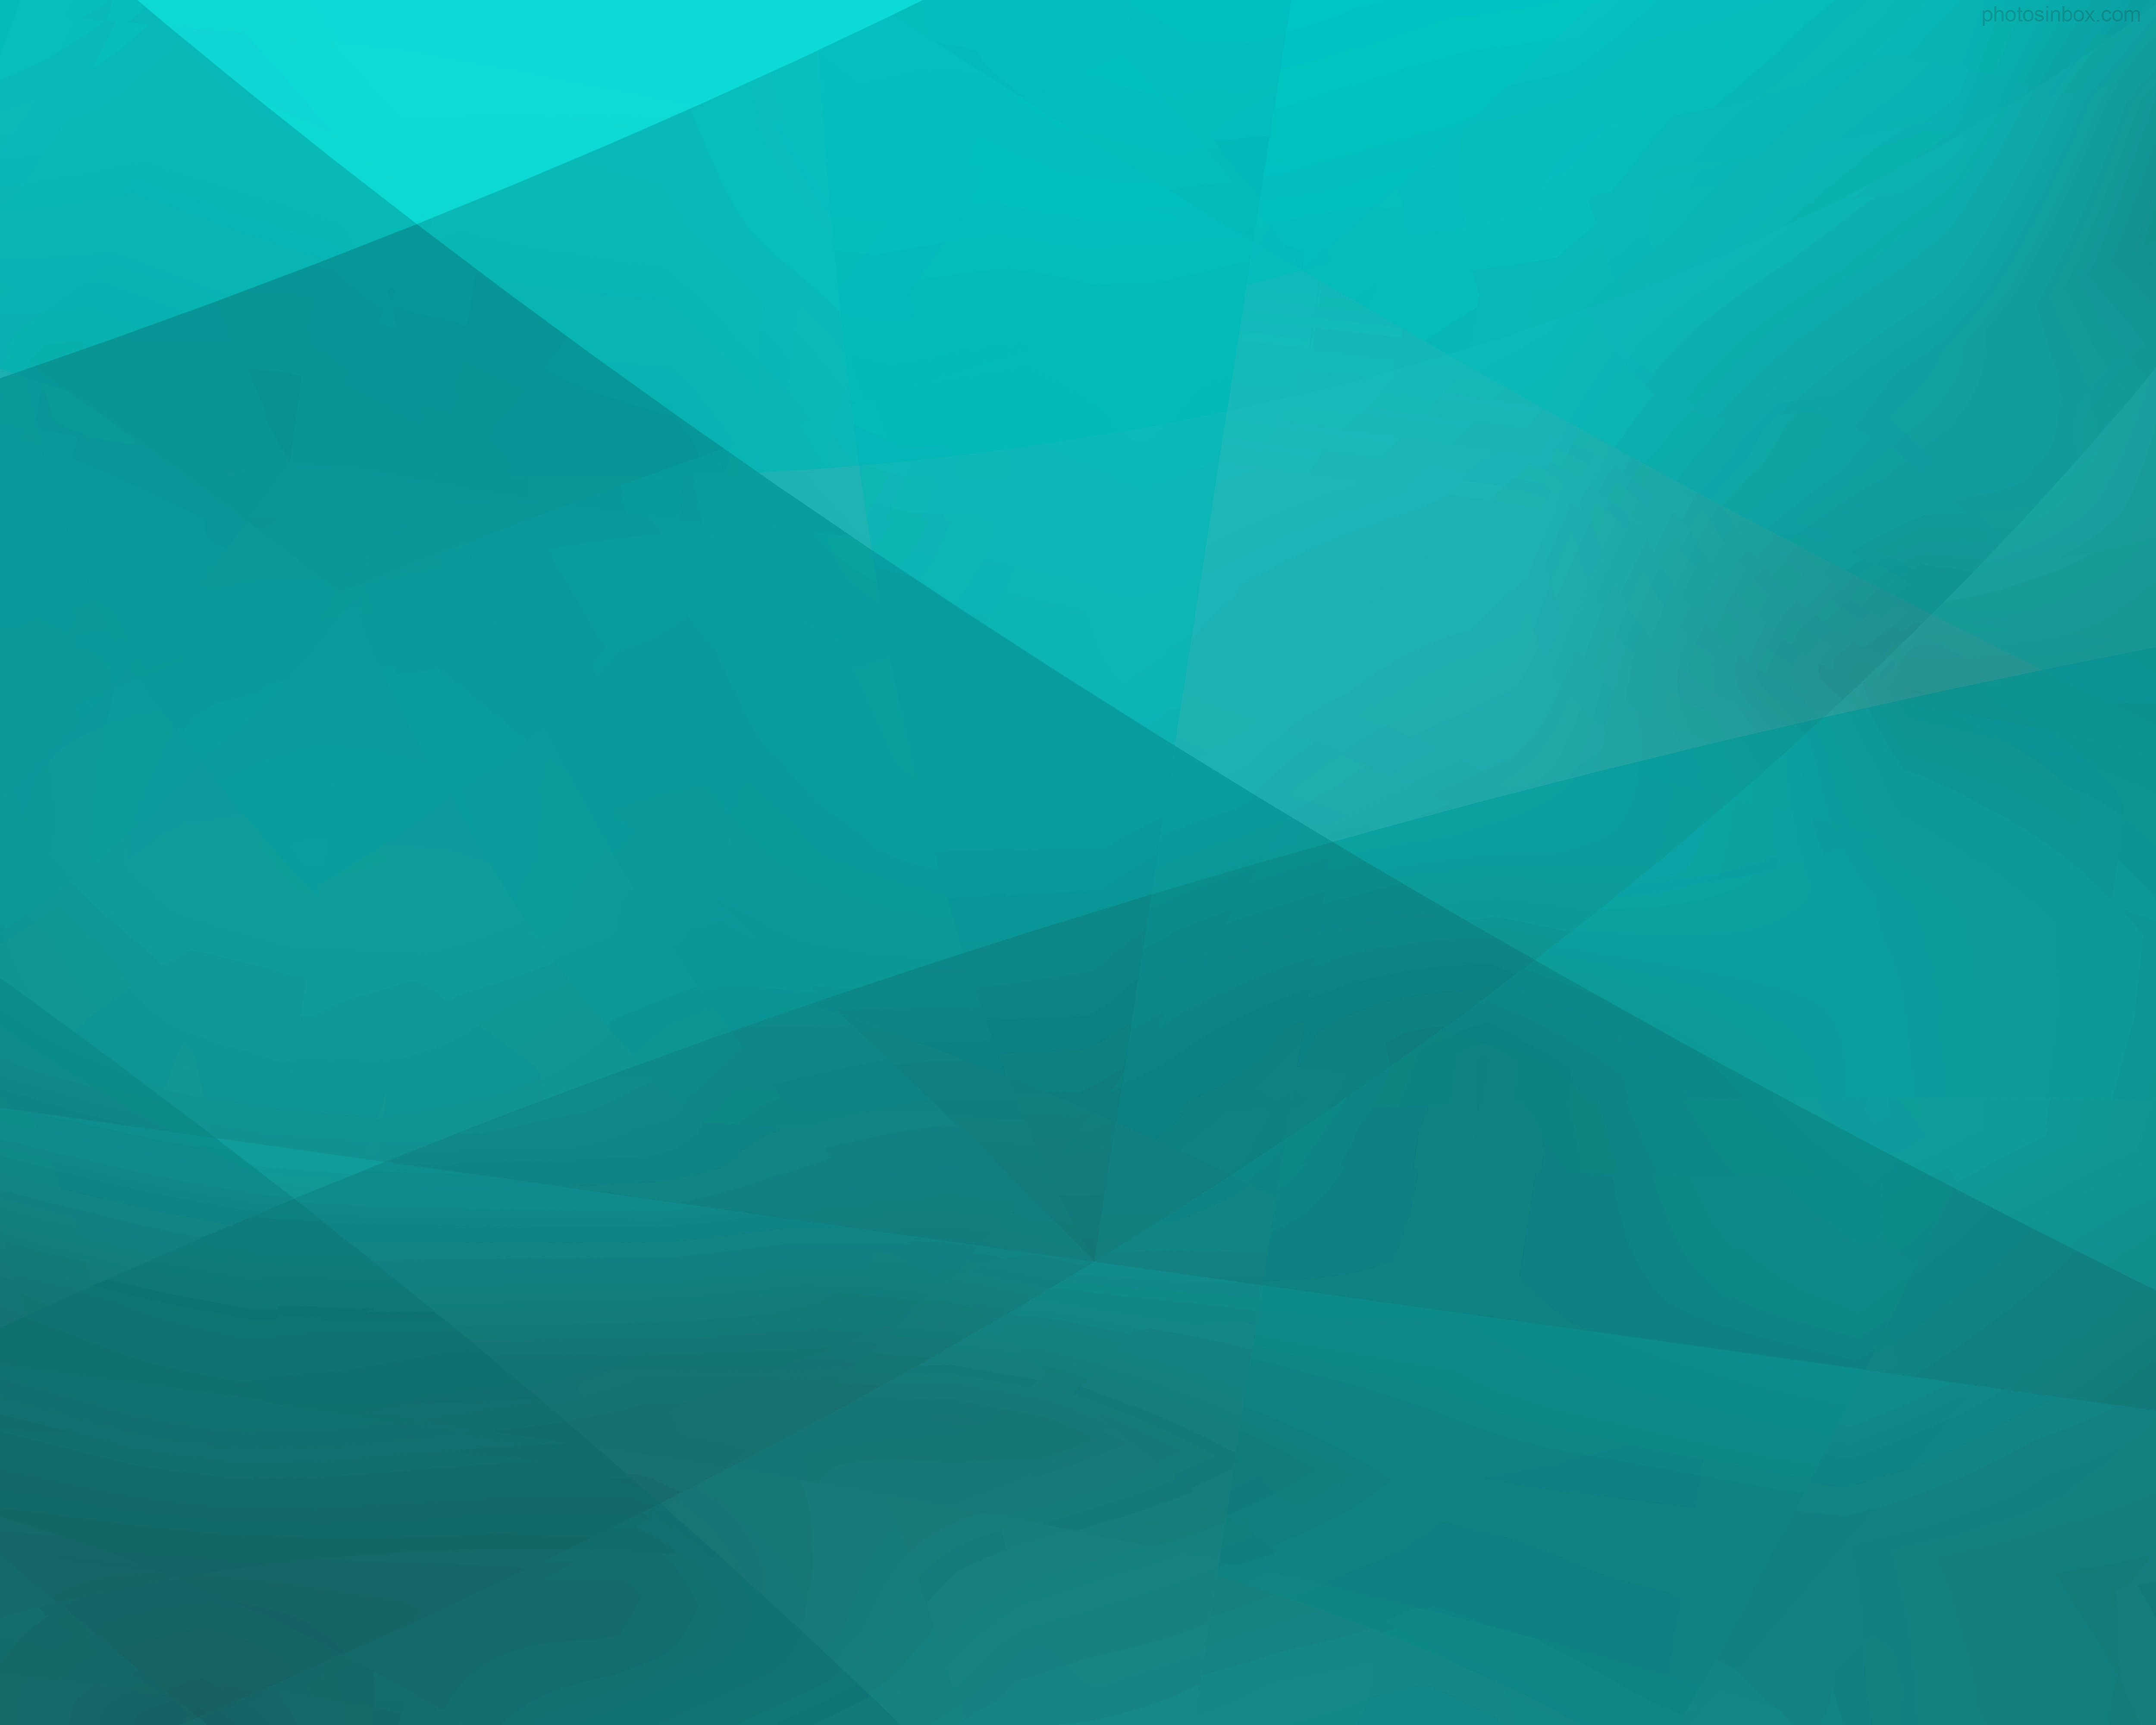 teal abstract background bcic